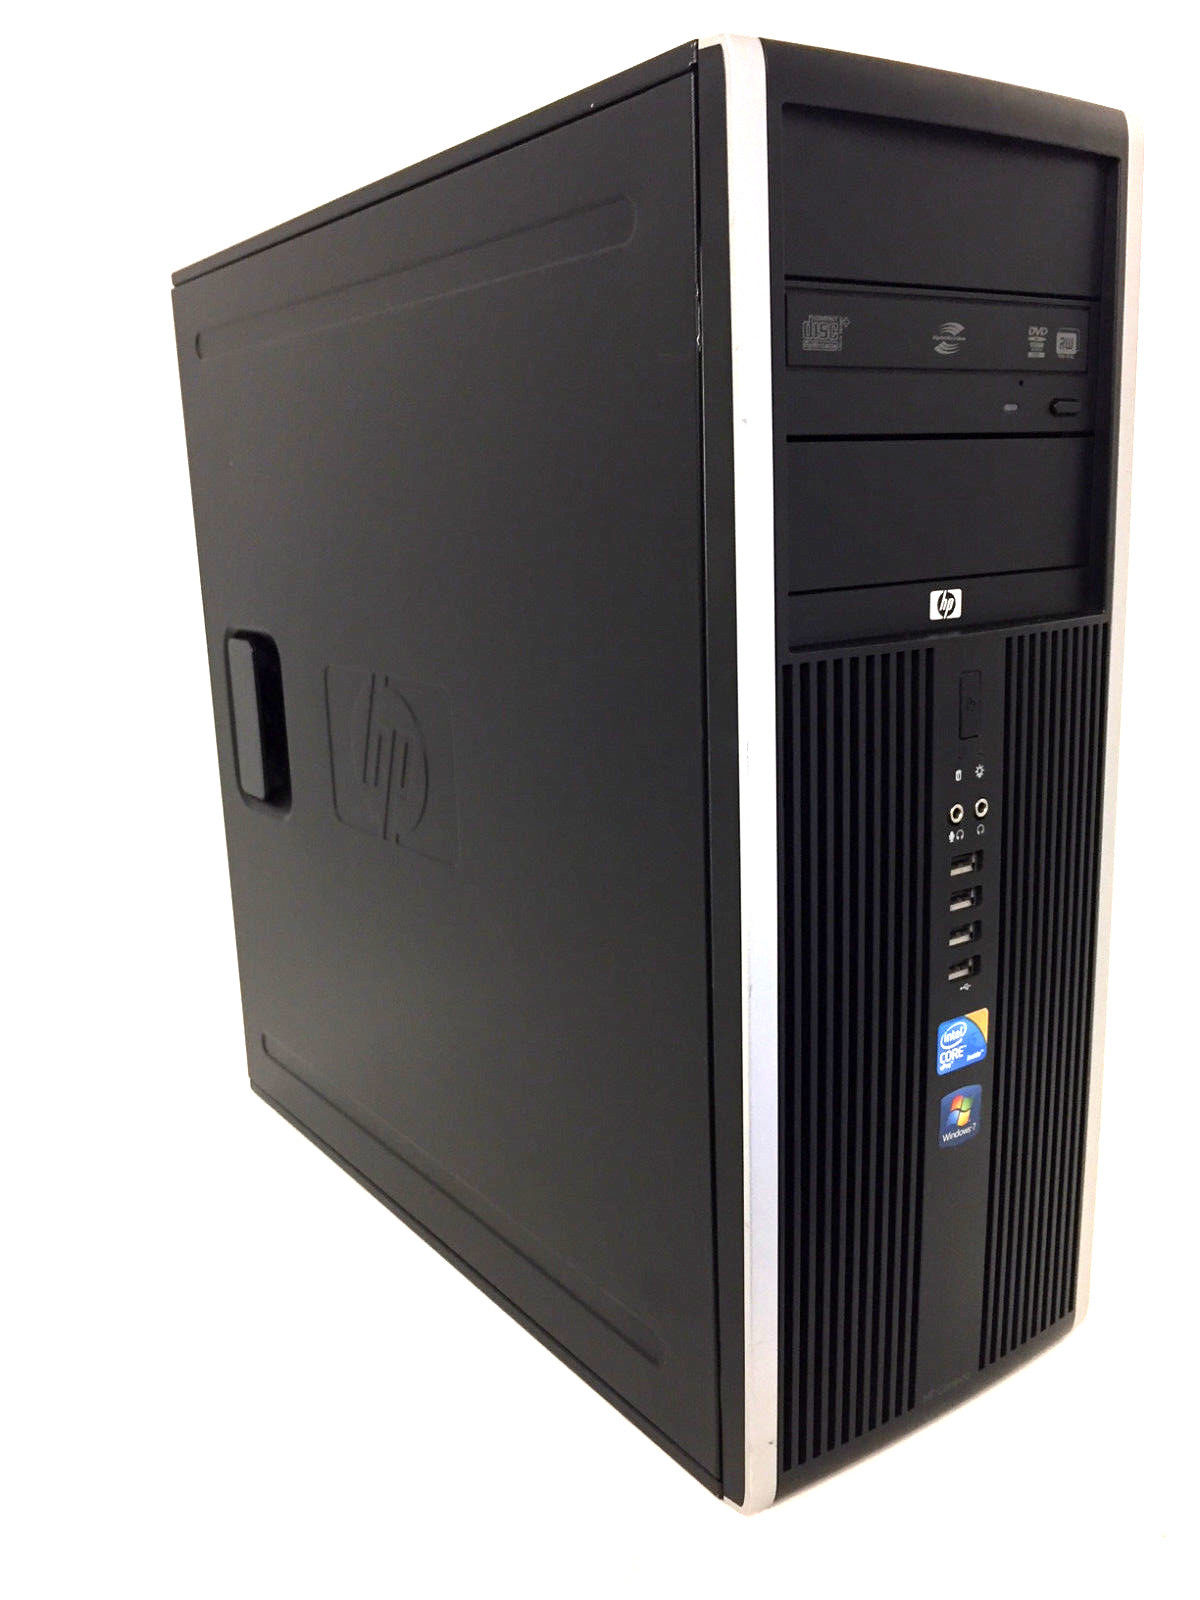 HP Compaq 8100 Elite No 3